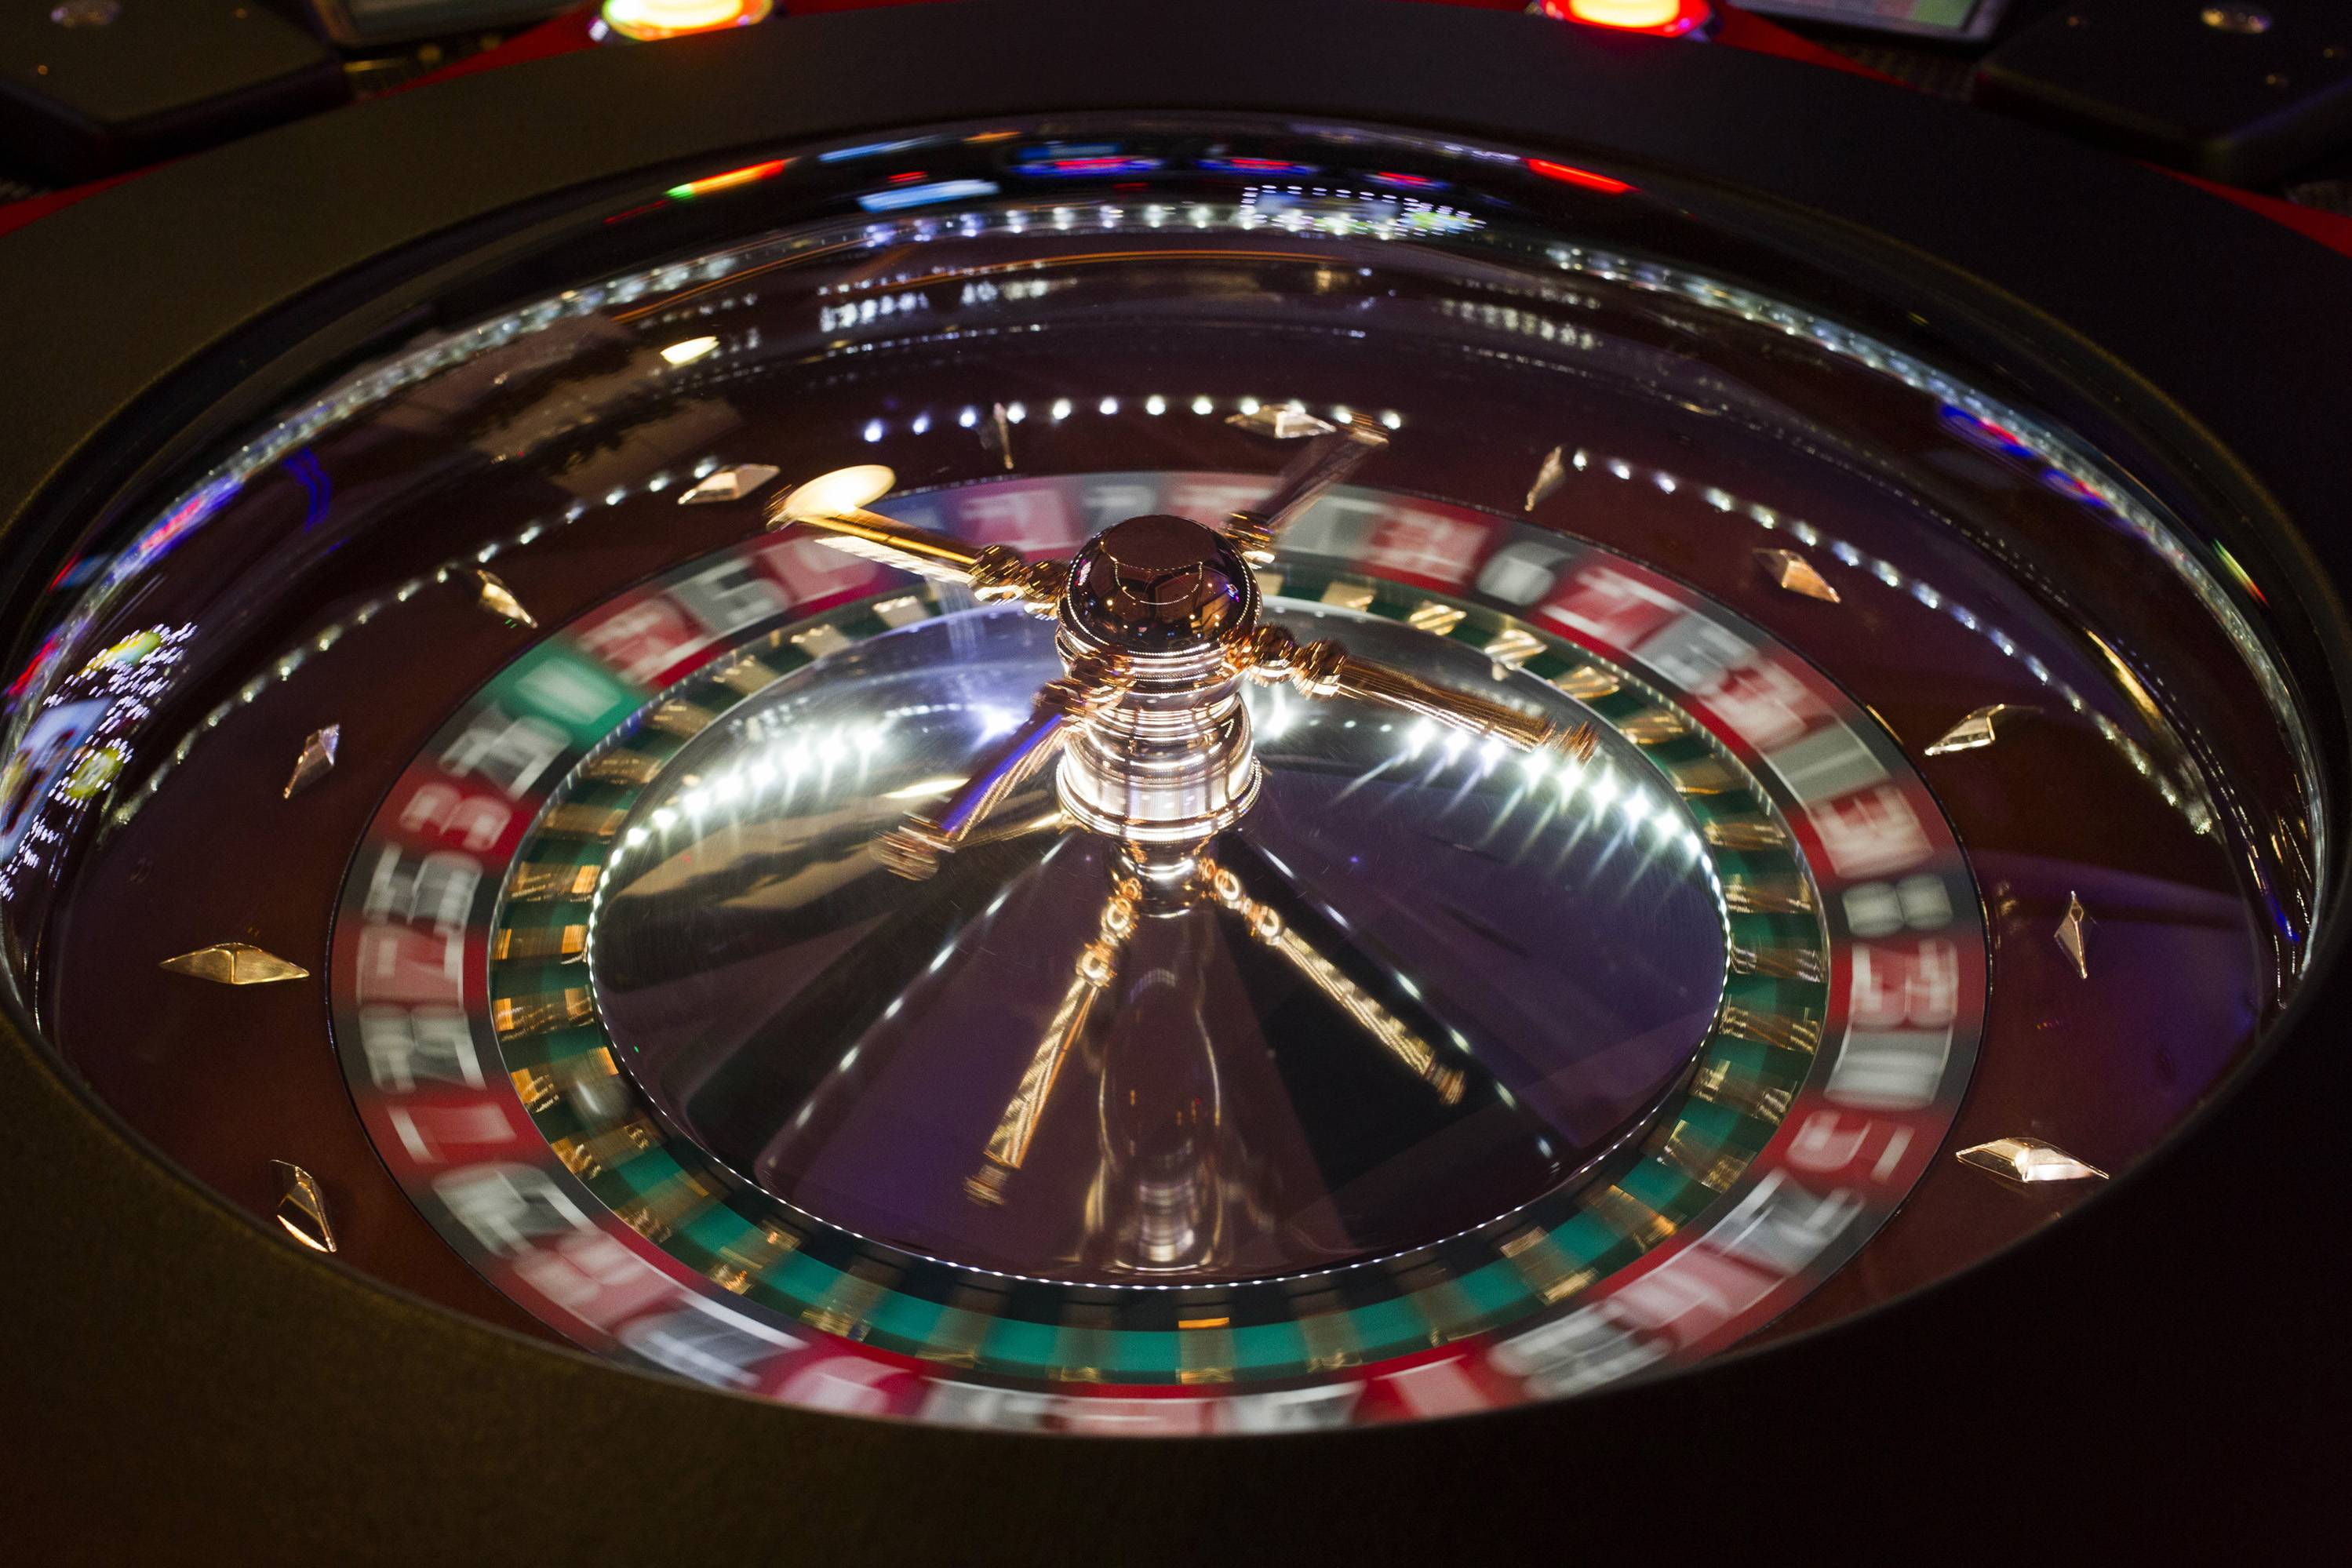 A ball rolls around a spinning roulette wheel.